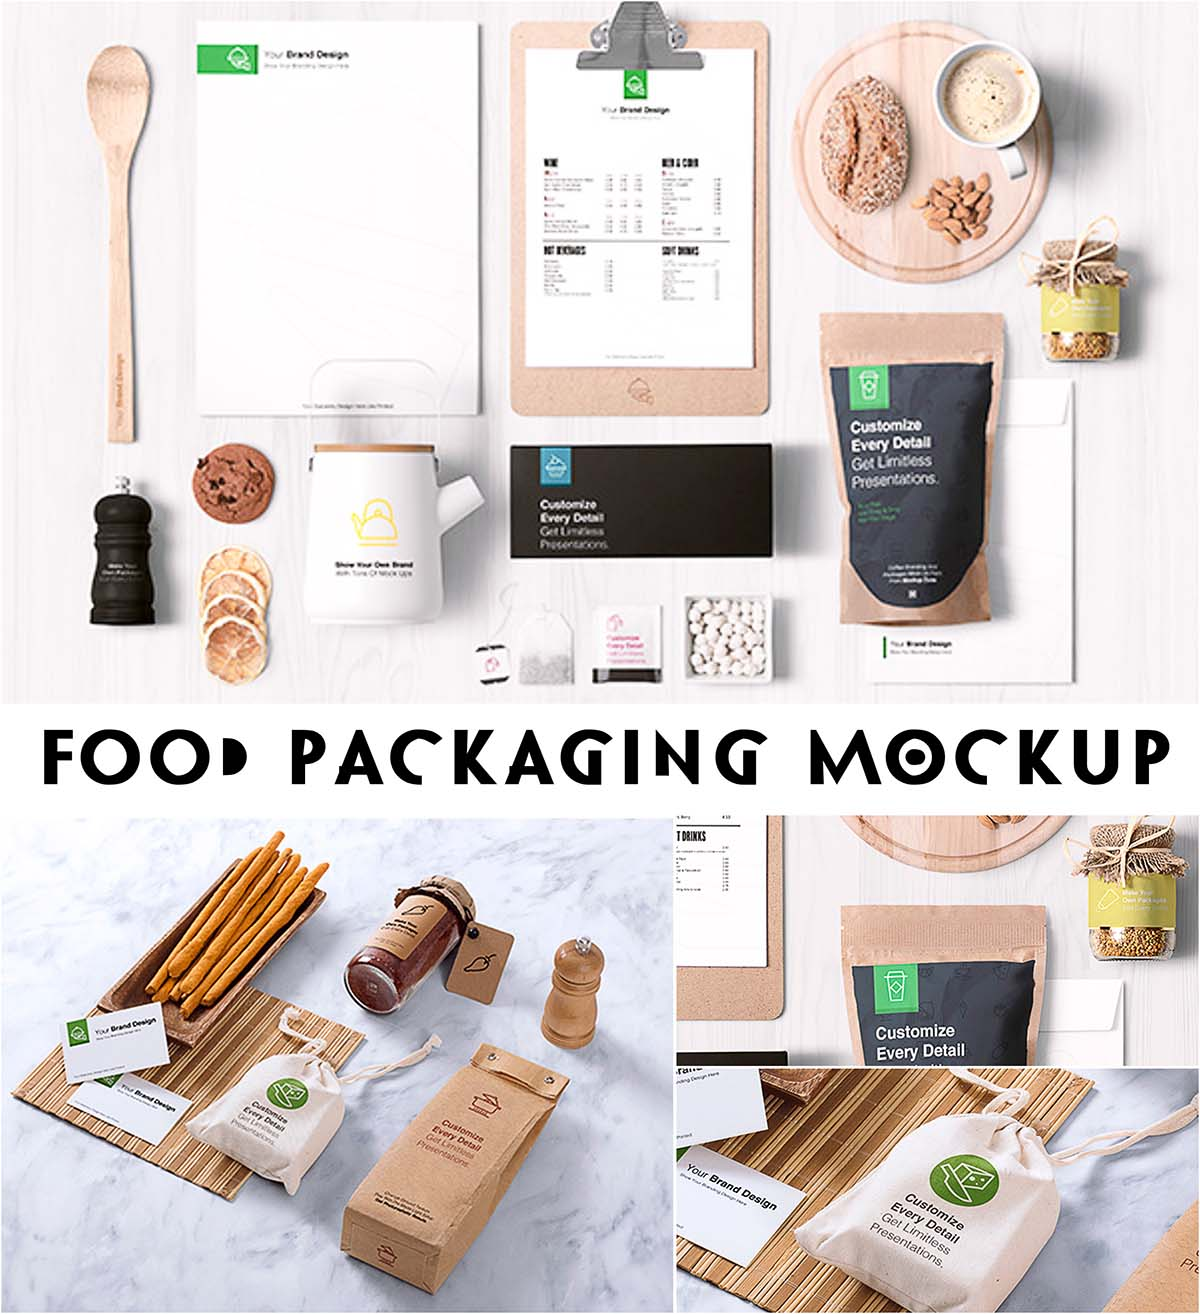 Food branding packaging mockup